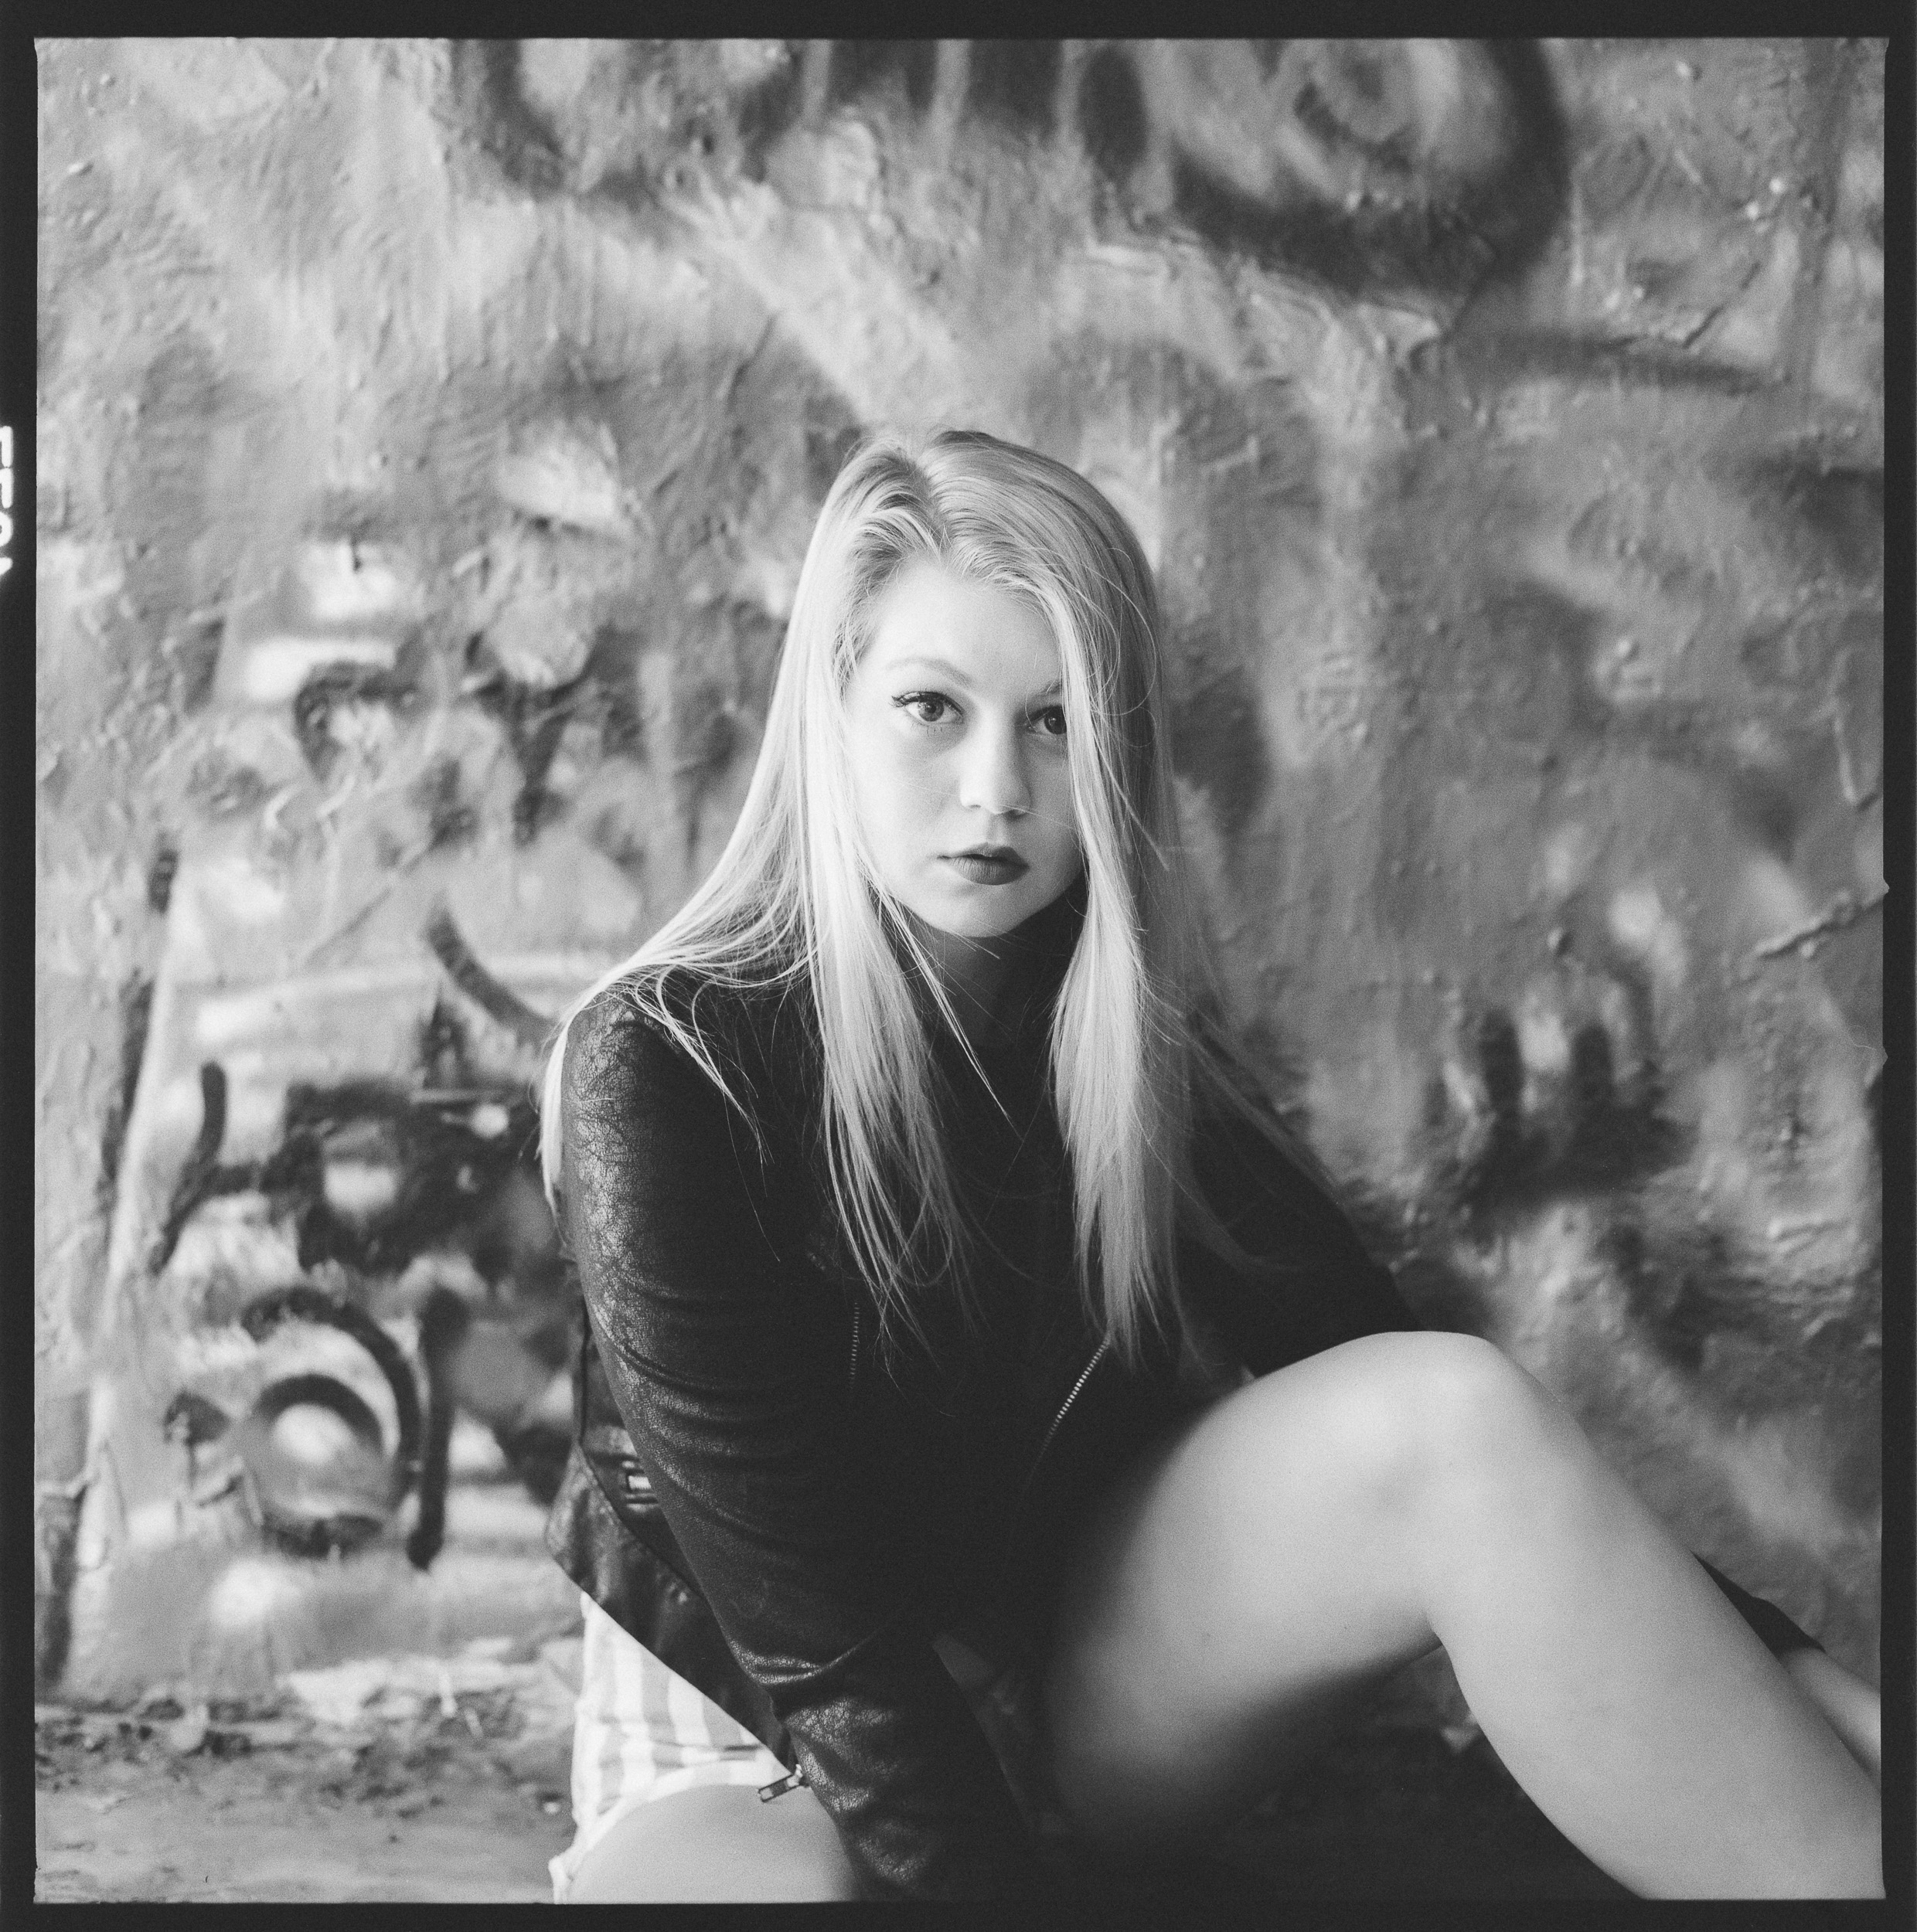 Model: Becca Olsen  Camera: Hasselblad 501CM  Film: HP5+